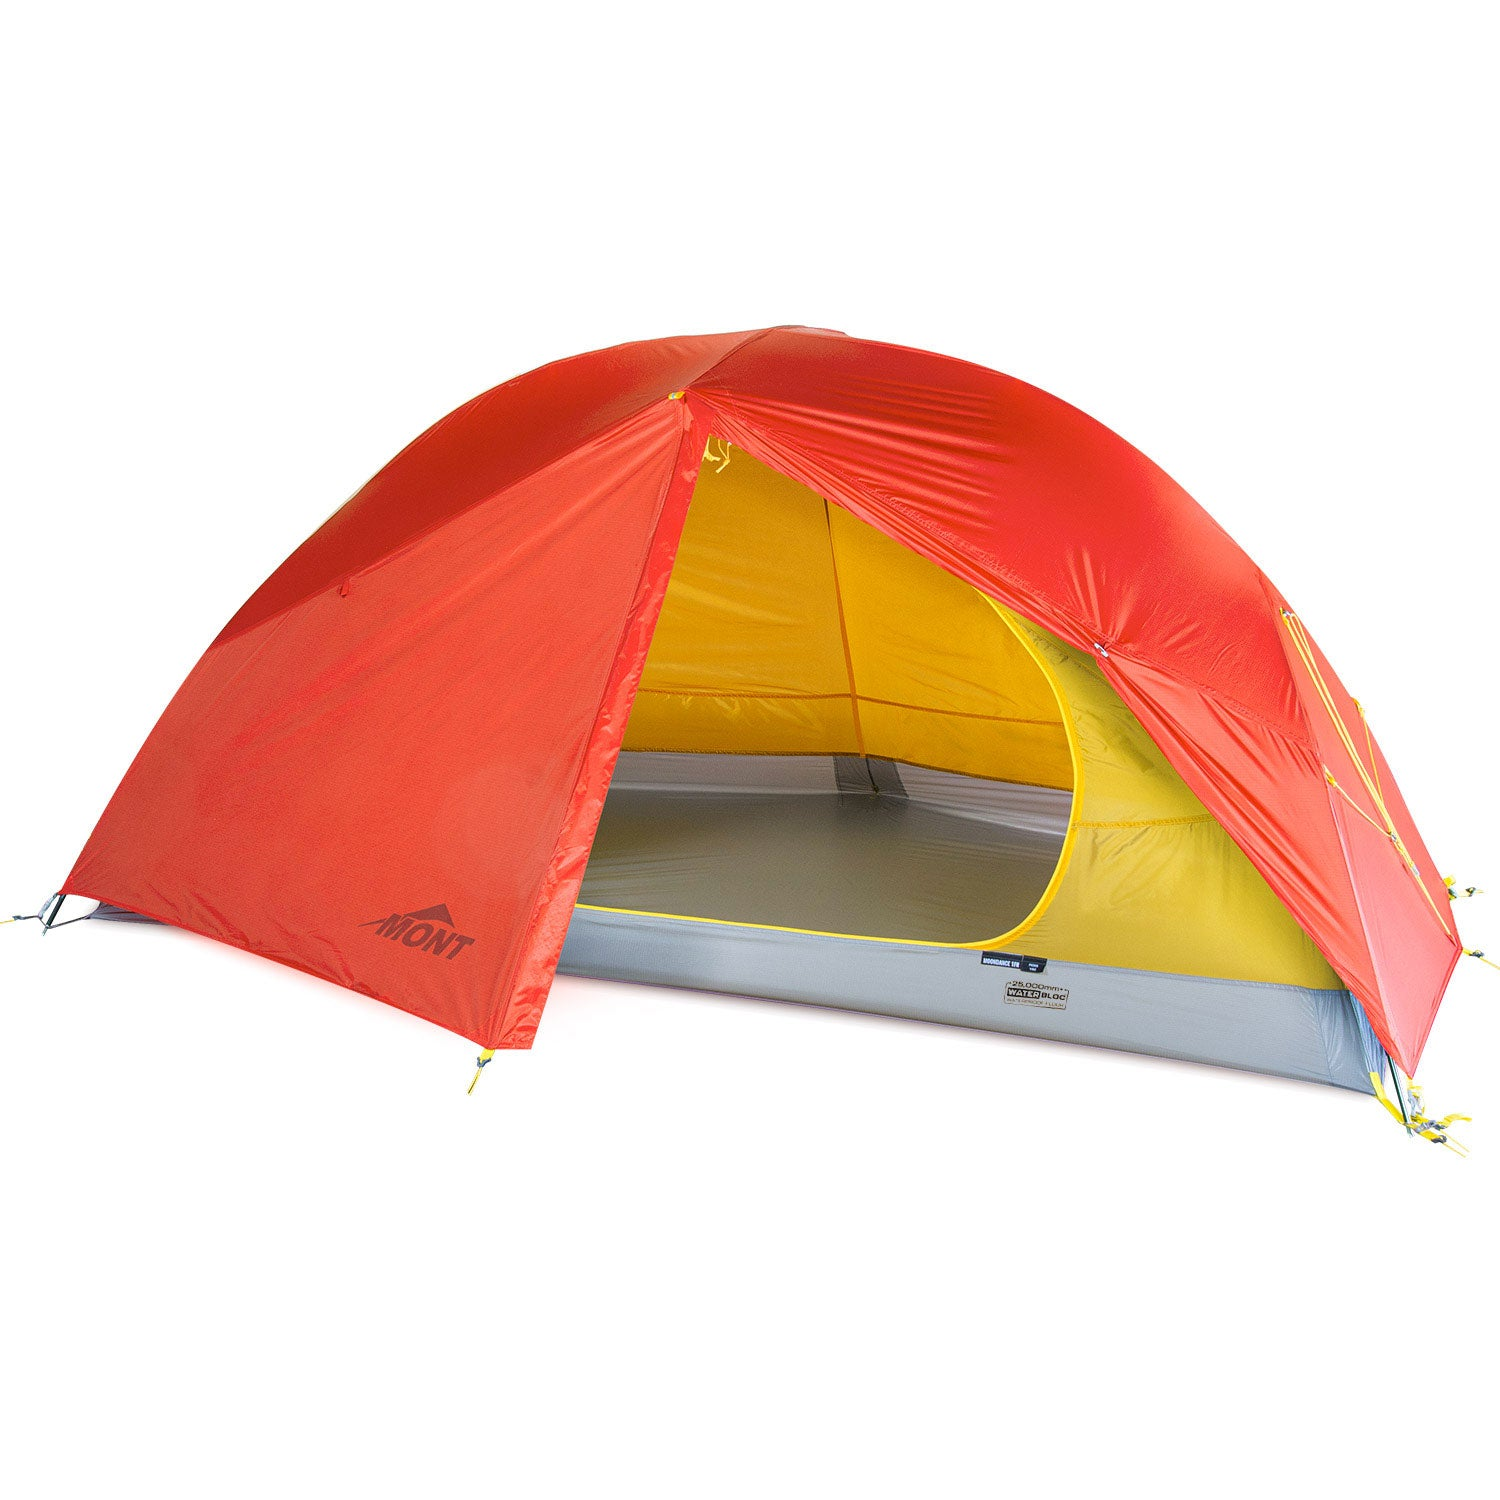 Moondance 1 Full Nylon 1 Person sub-alpine 4 season tent with fly door and inner door open